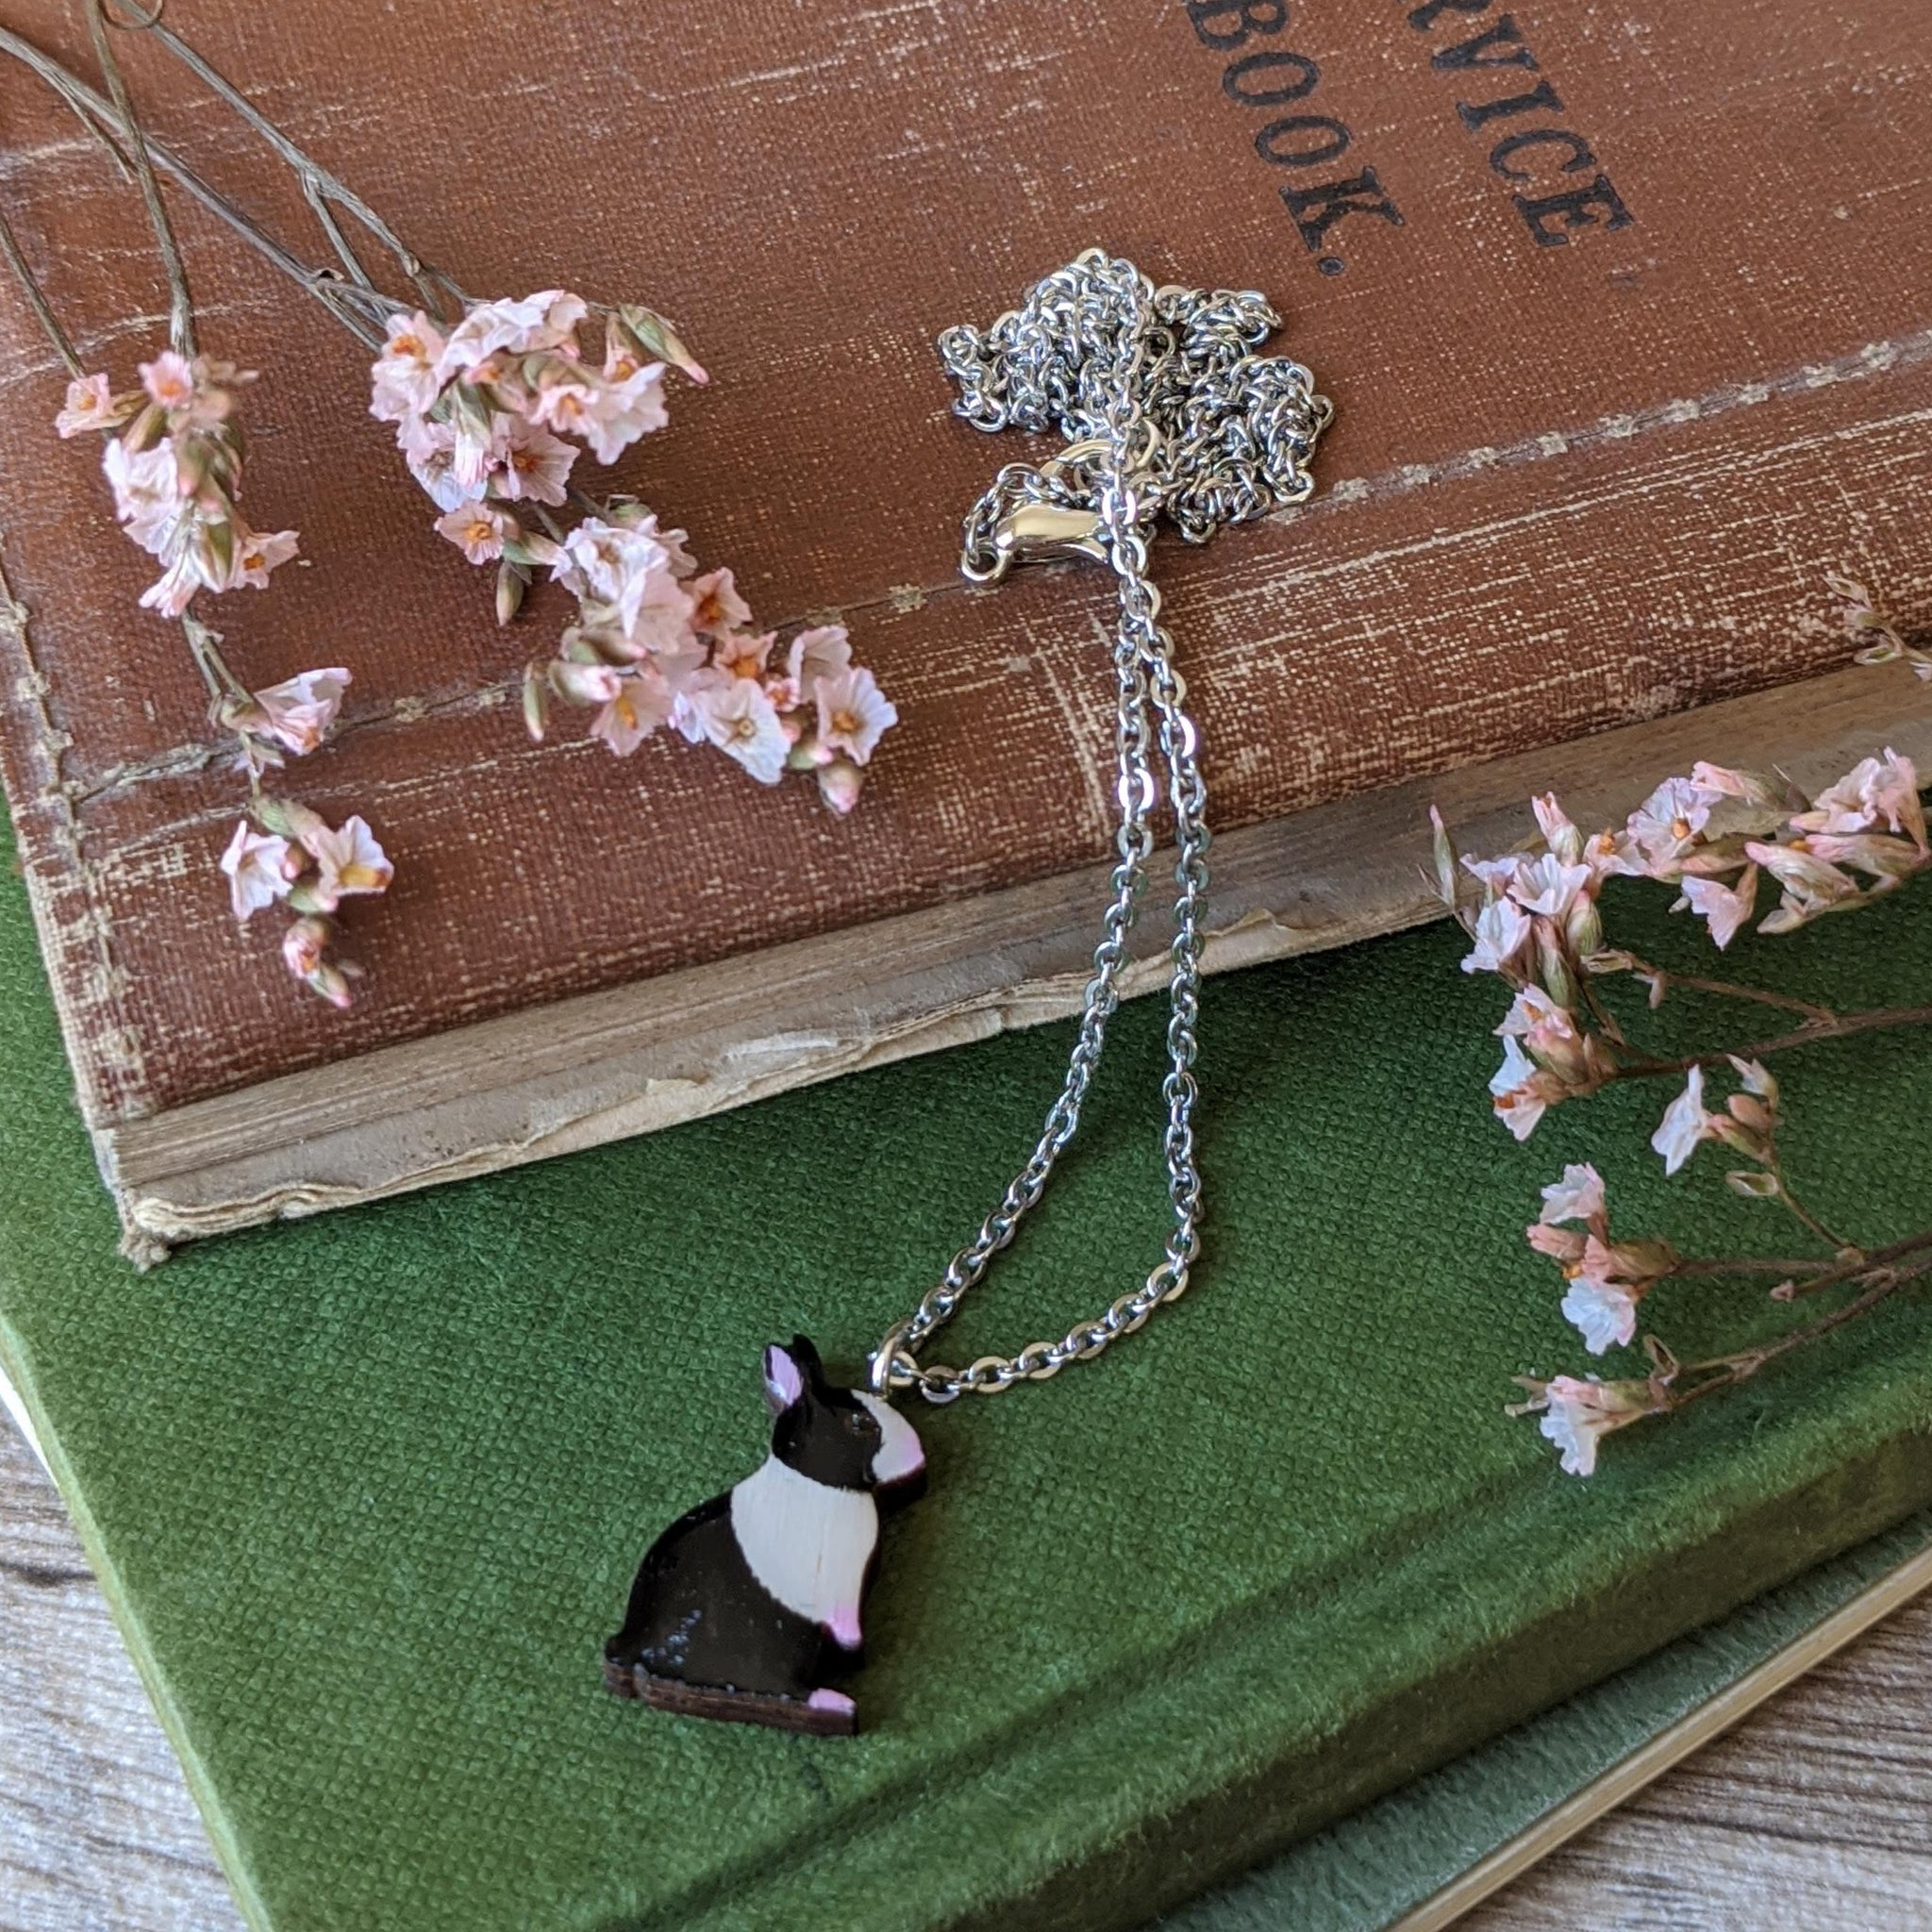 Rabbit Necklace - Dutch - Everything Bunny Rabbit